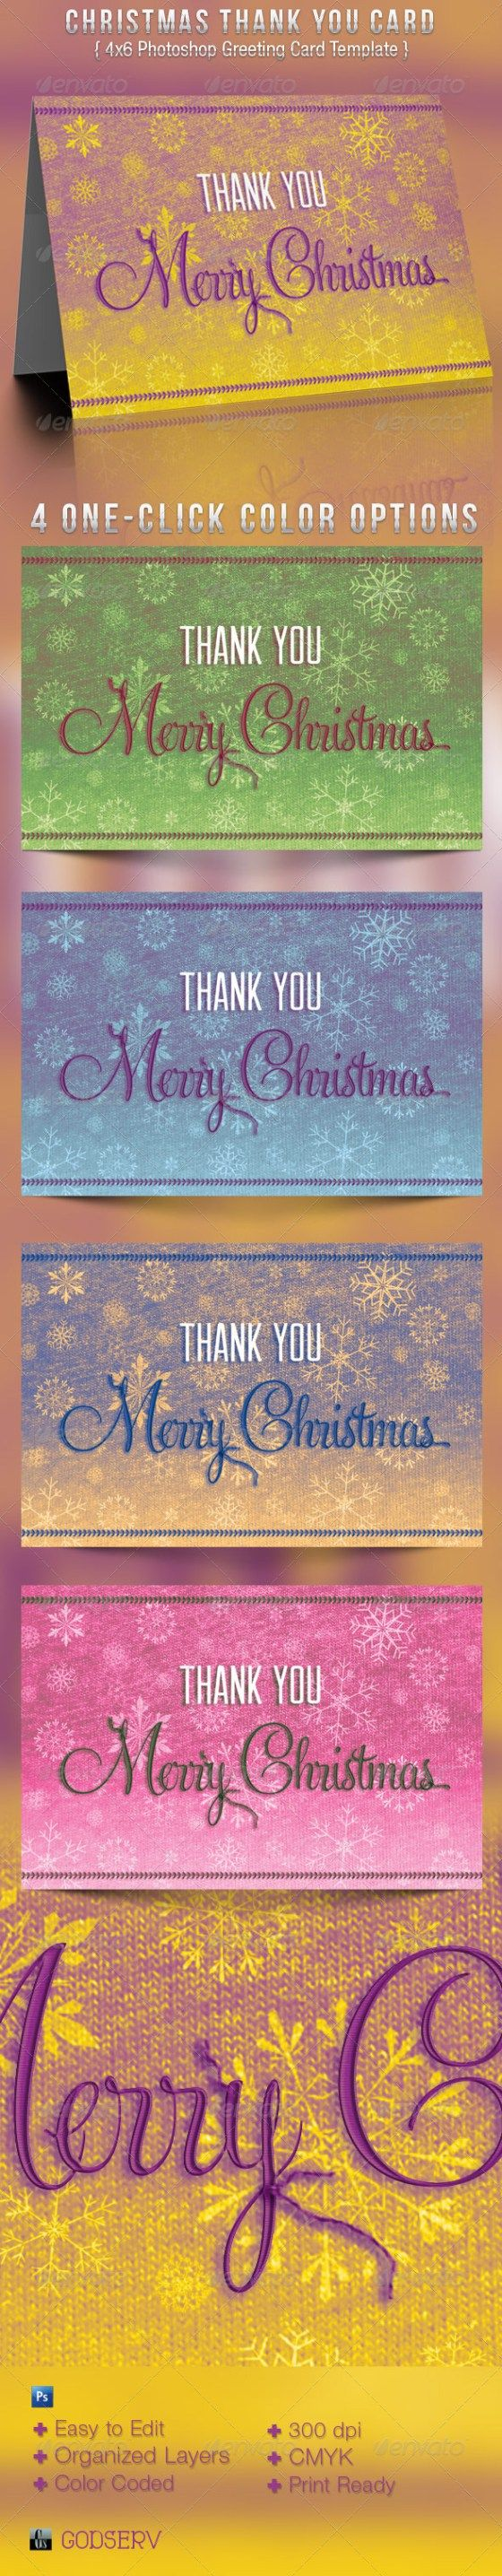 17 best images about christmas print templates christmas thank you greeting card template graphicmule